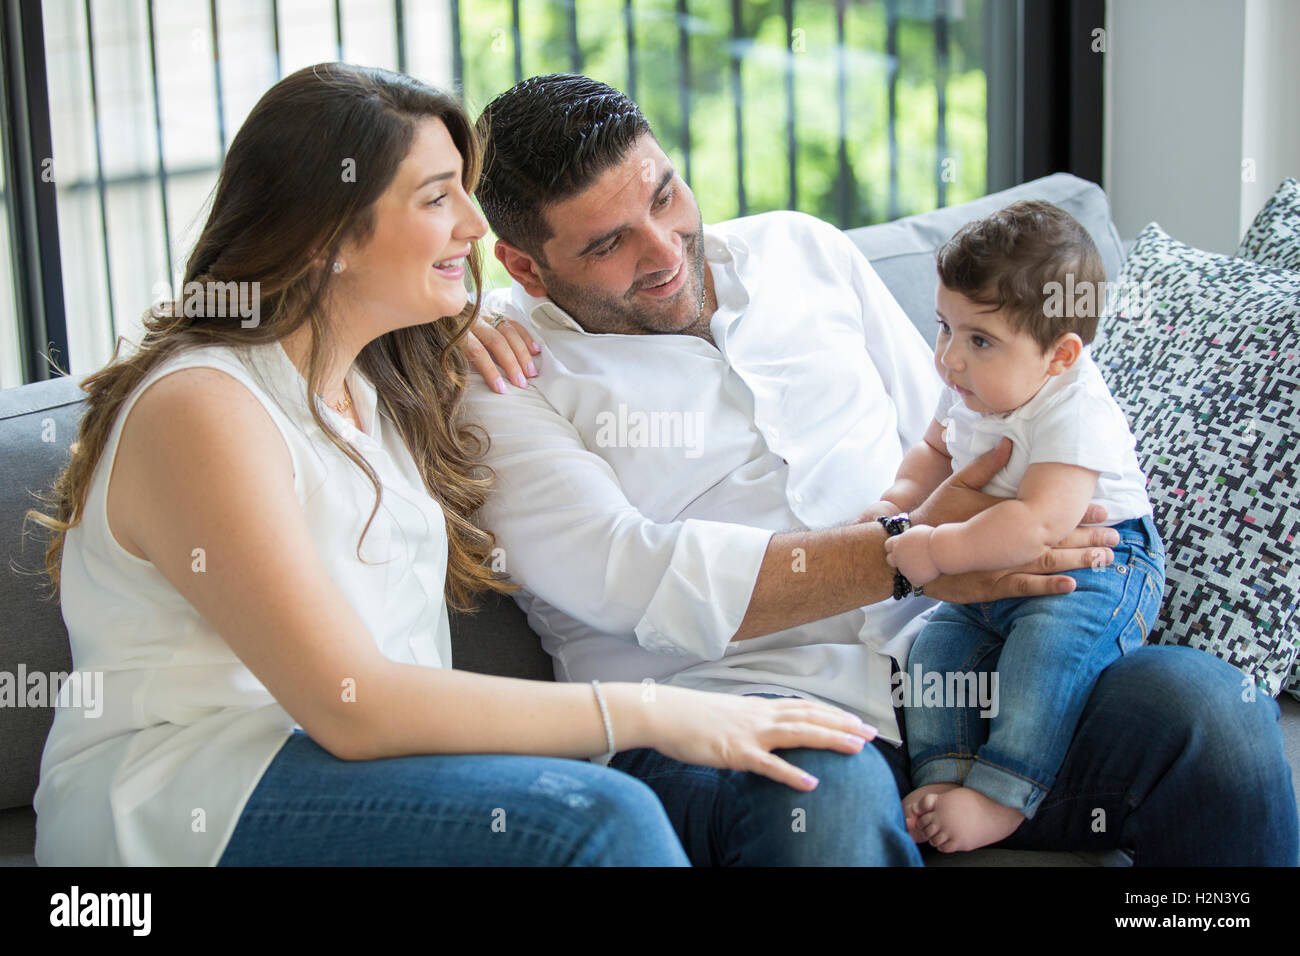 Father and mother with their baby boy sitting indoors smiling - Stock Image